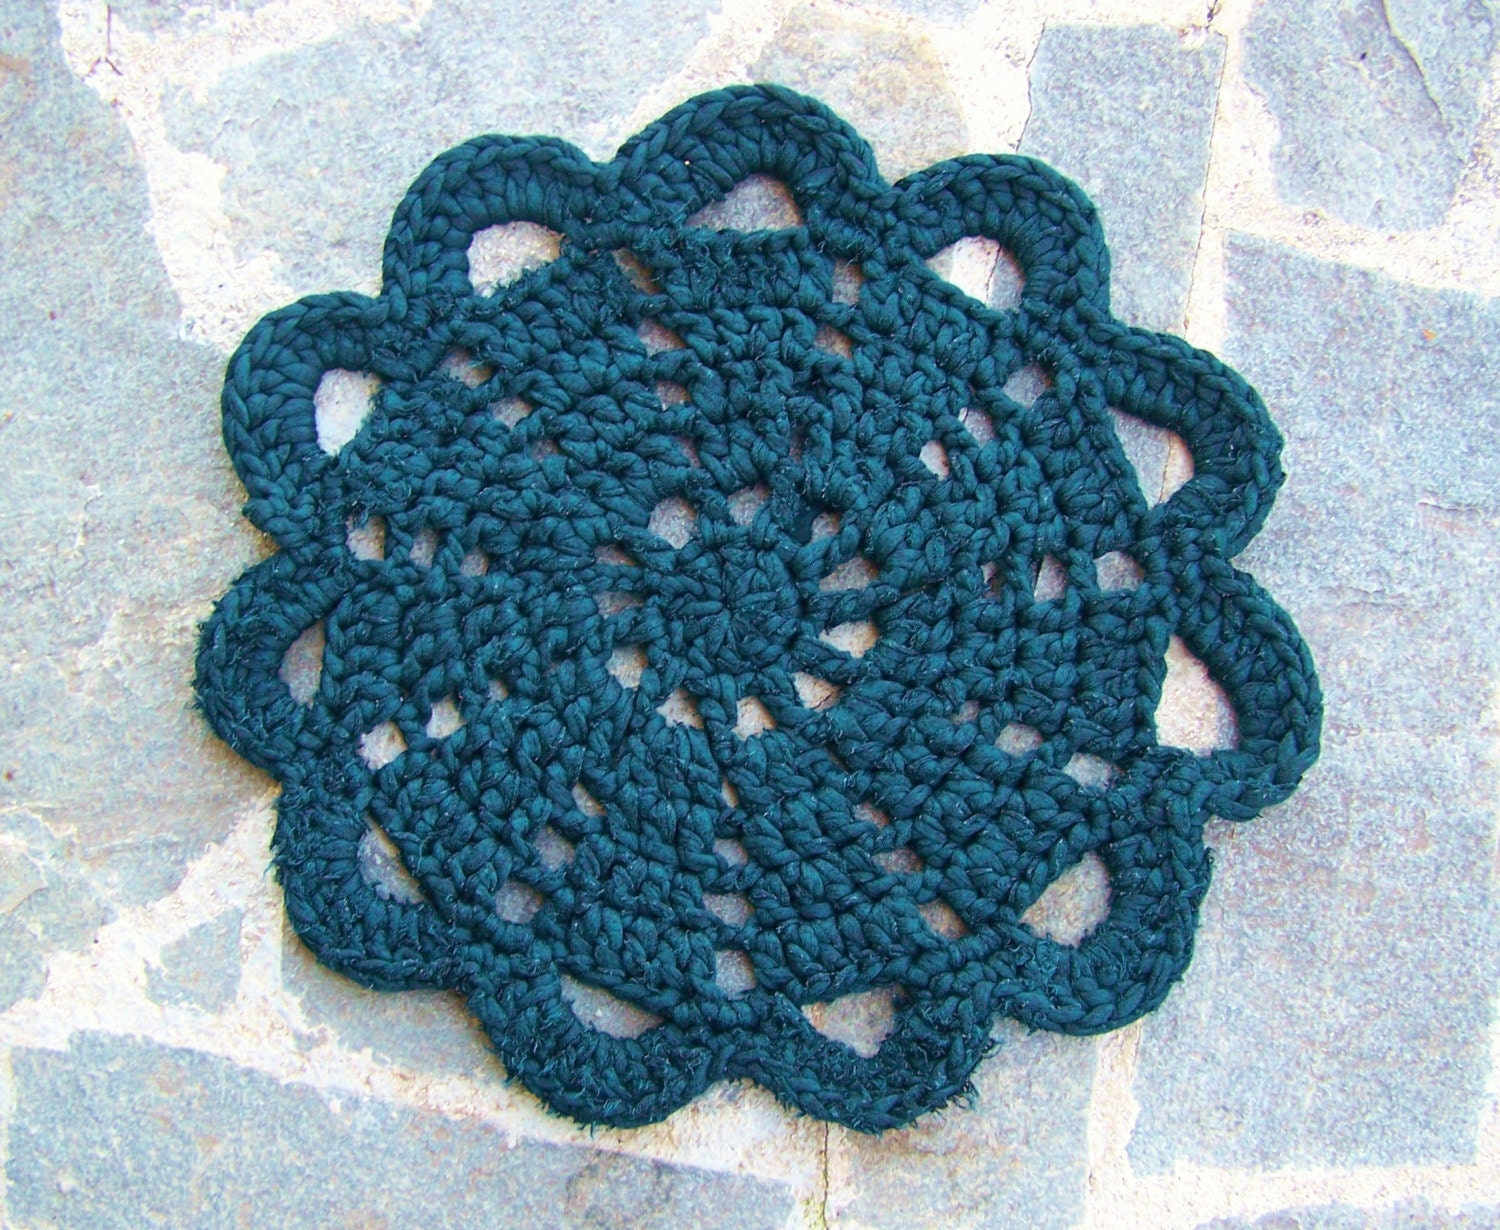 Crocheting Round Rugs : Crochet Round Doily Rug Dark green Tshirt Yarn Rug by 2knit2purl